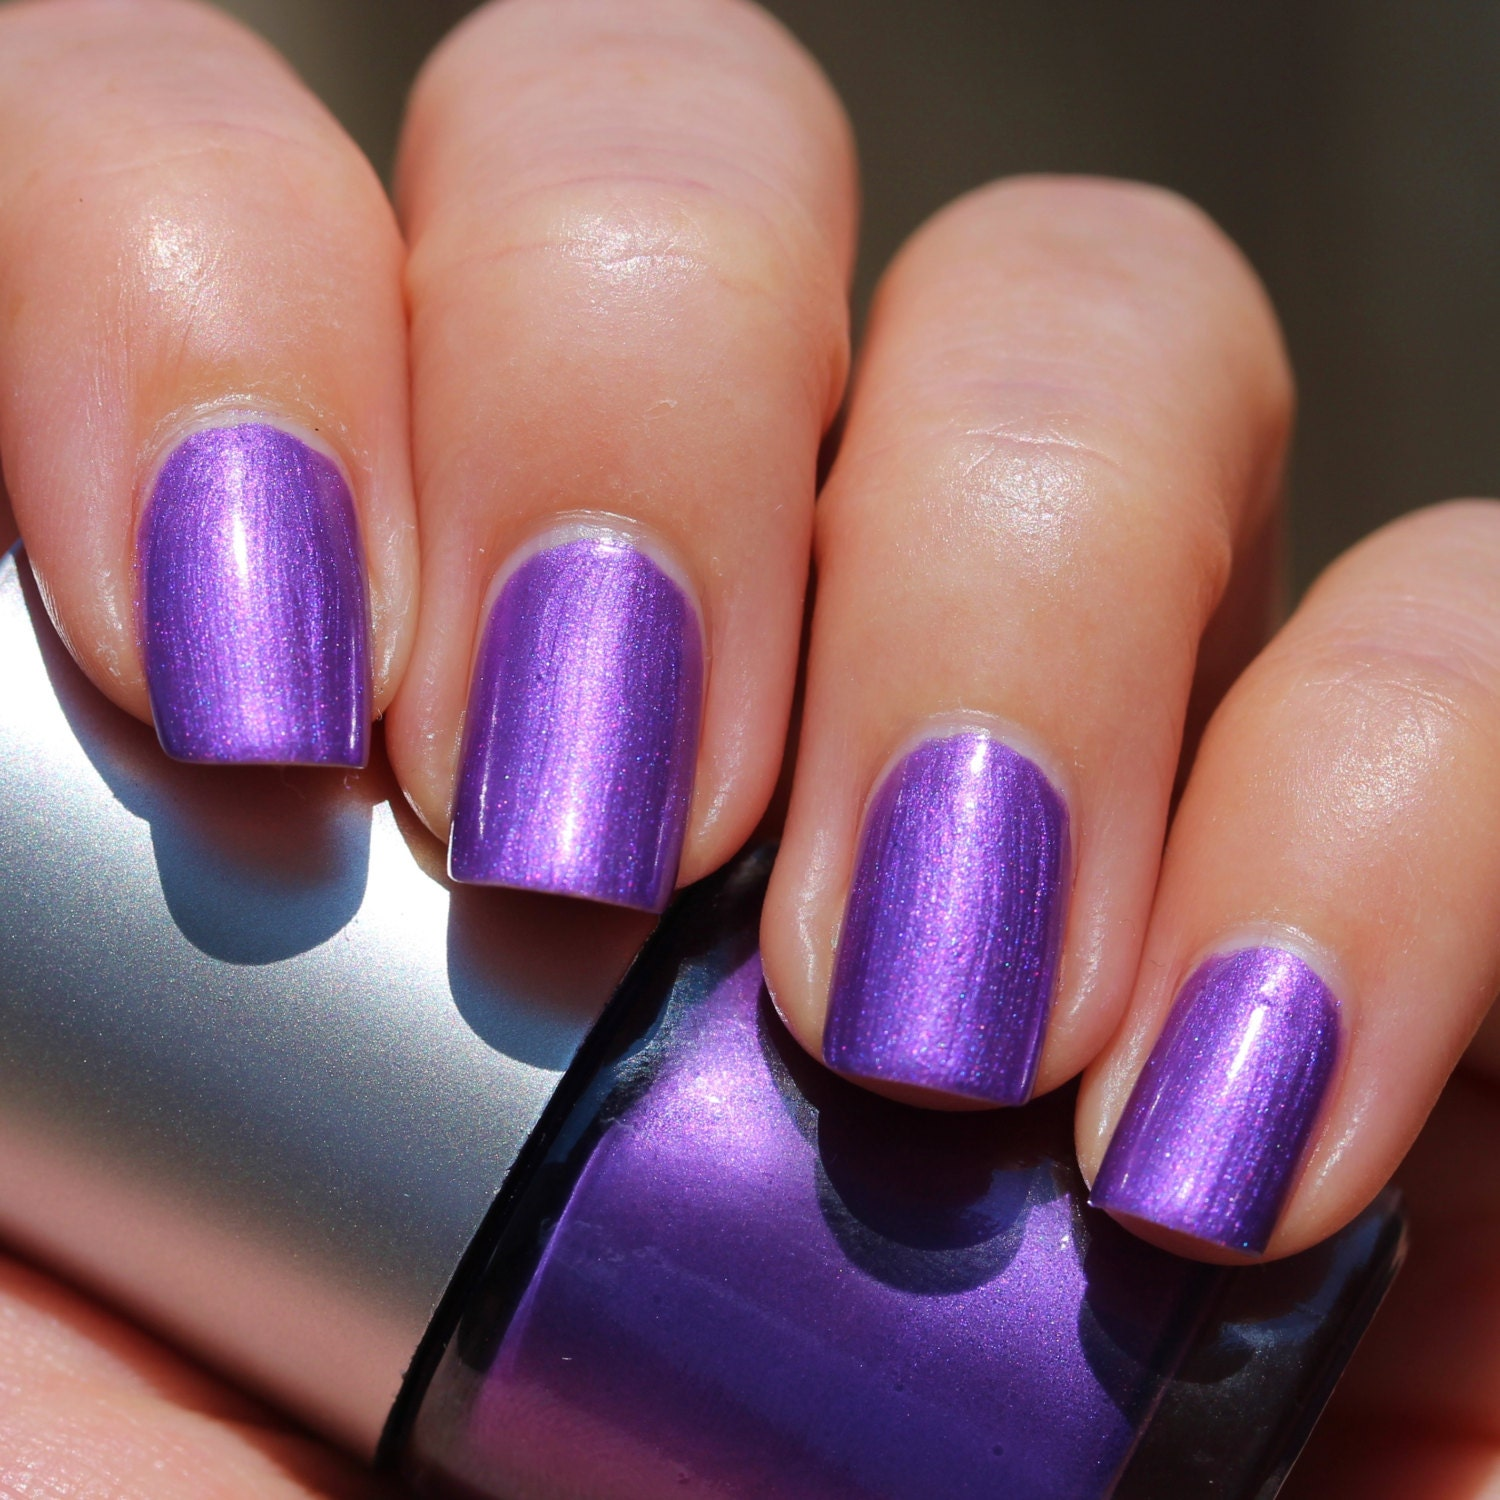 Urchin Franken Nail Polish Bright purple color with pink